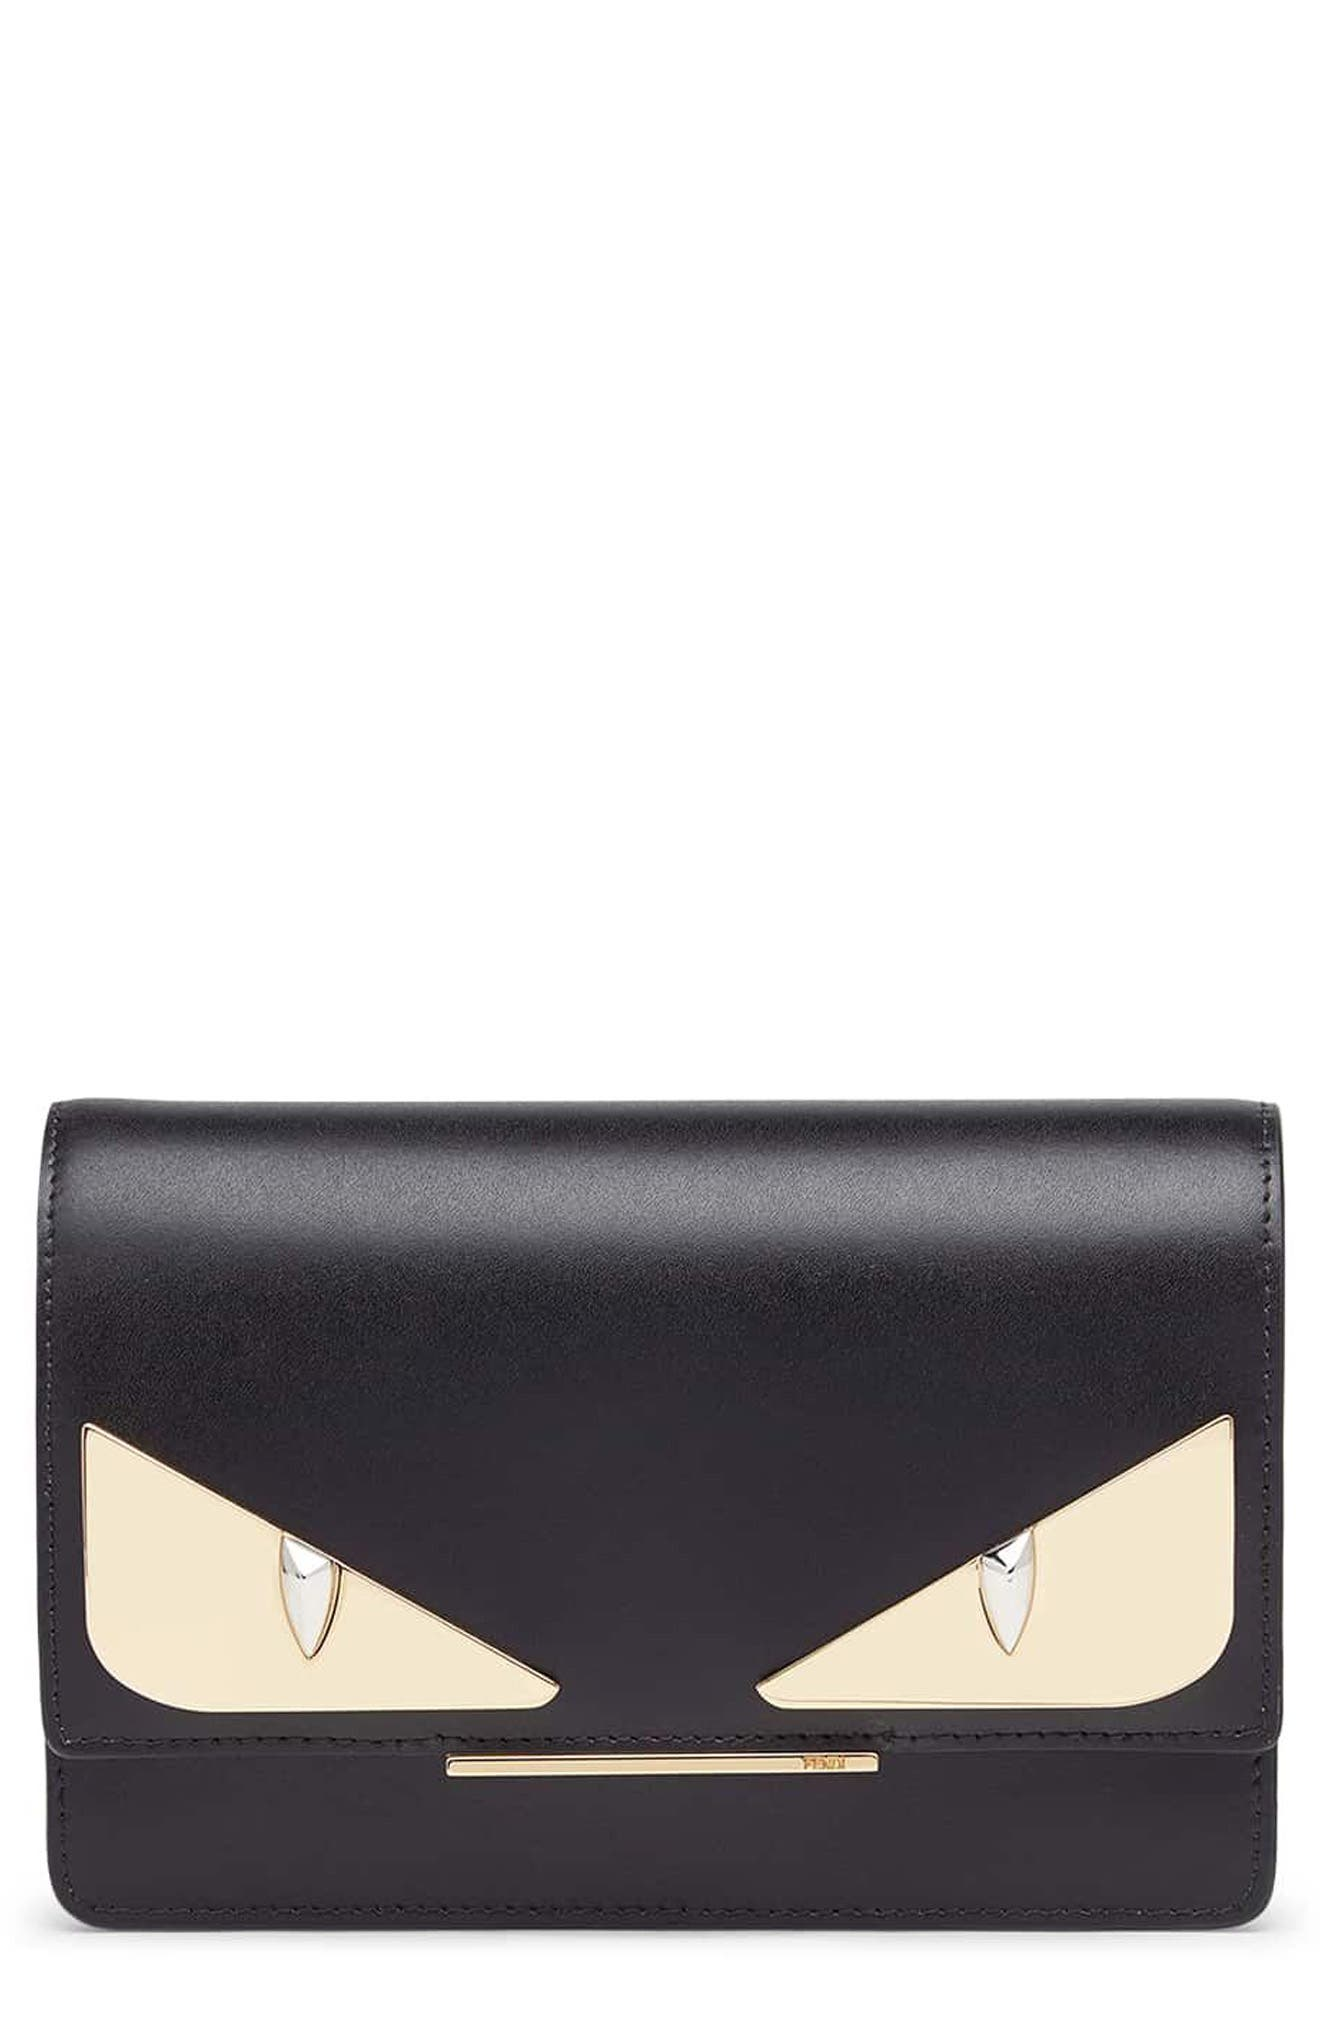 FENDI,                             Tube Monster Leather Wallet on a Chain,                             Main thumbnail 1, color,                             006